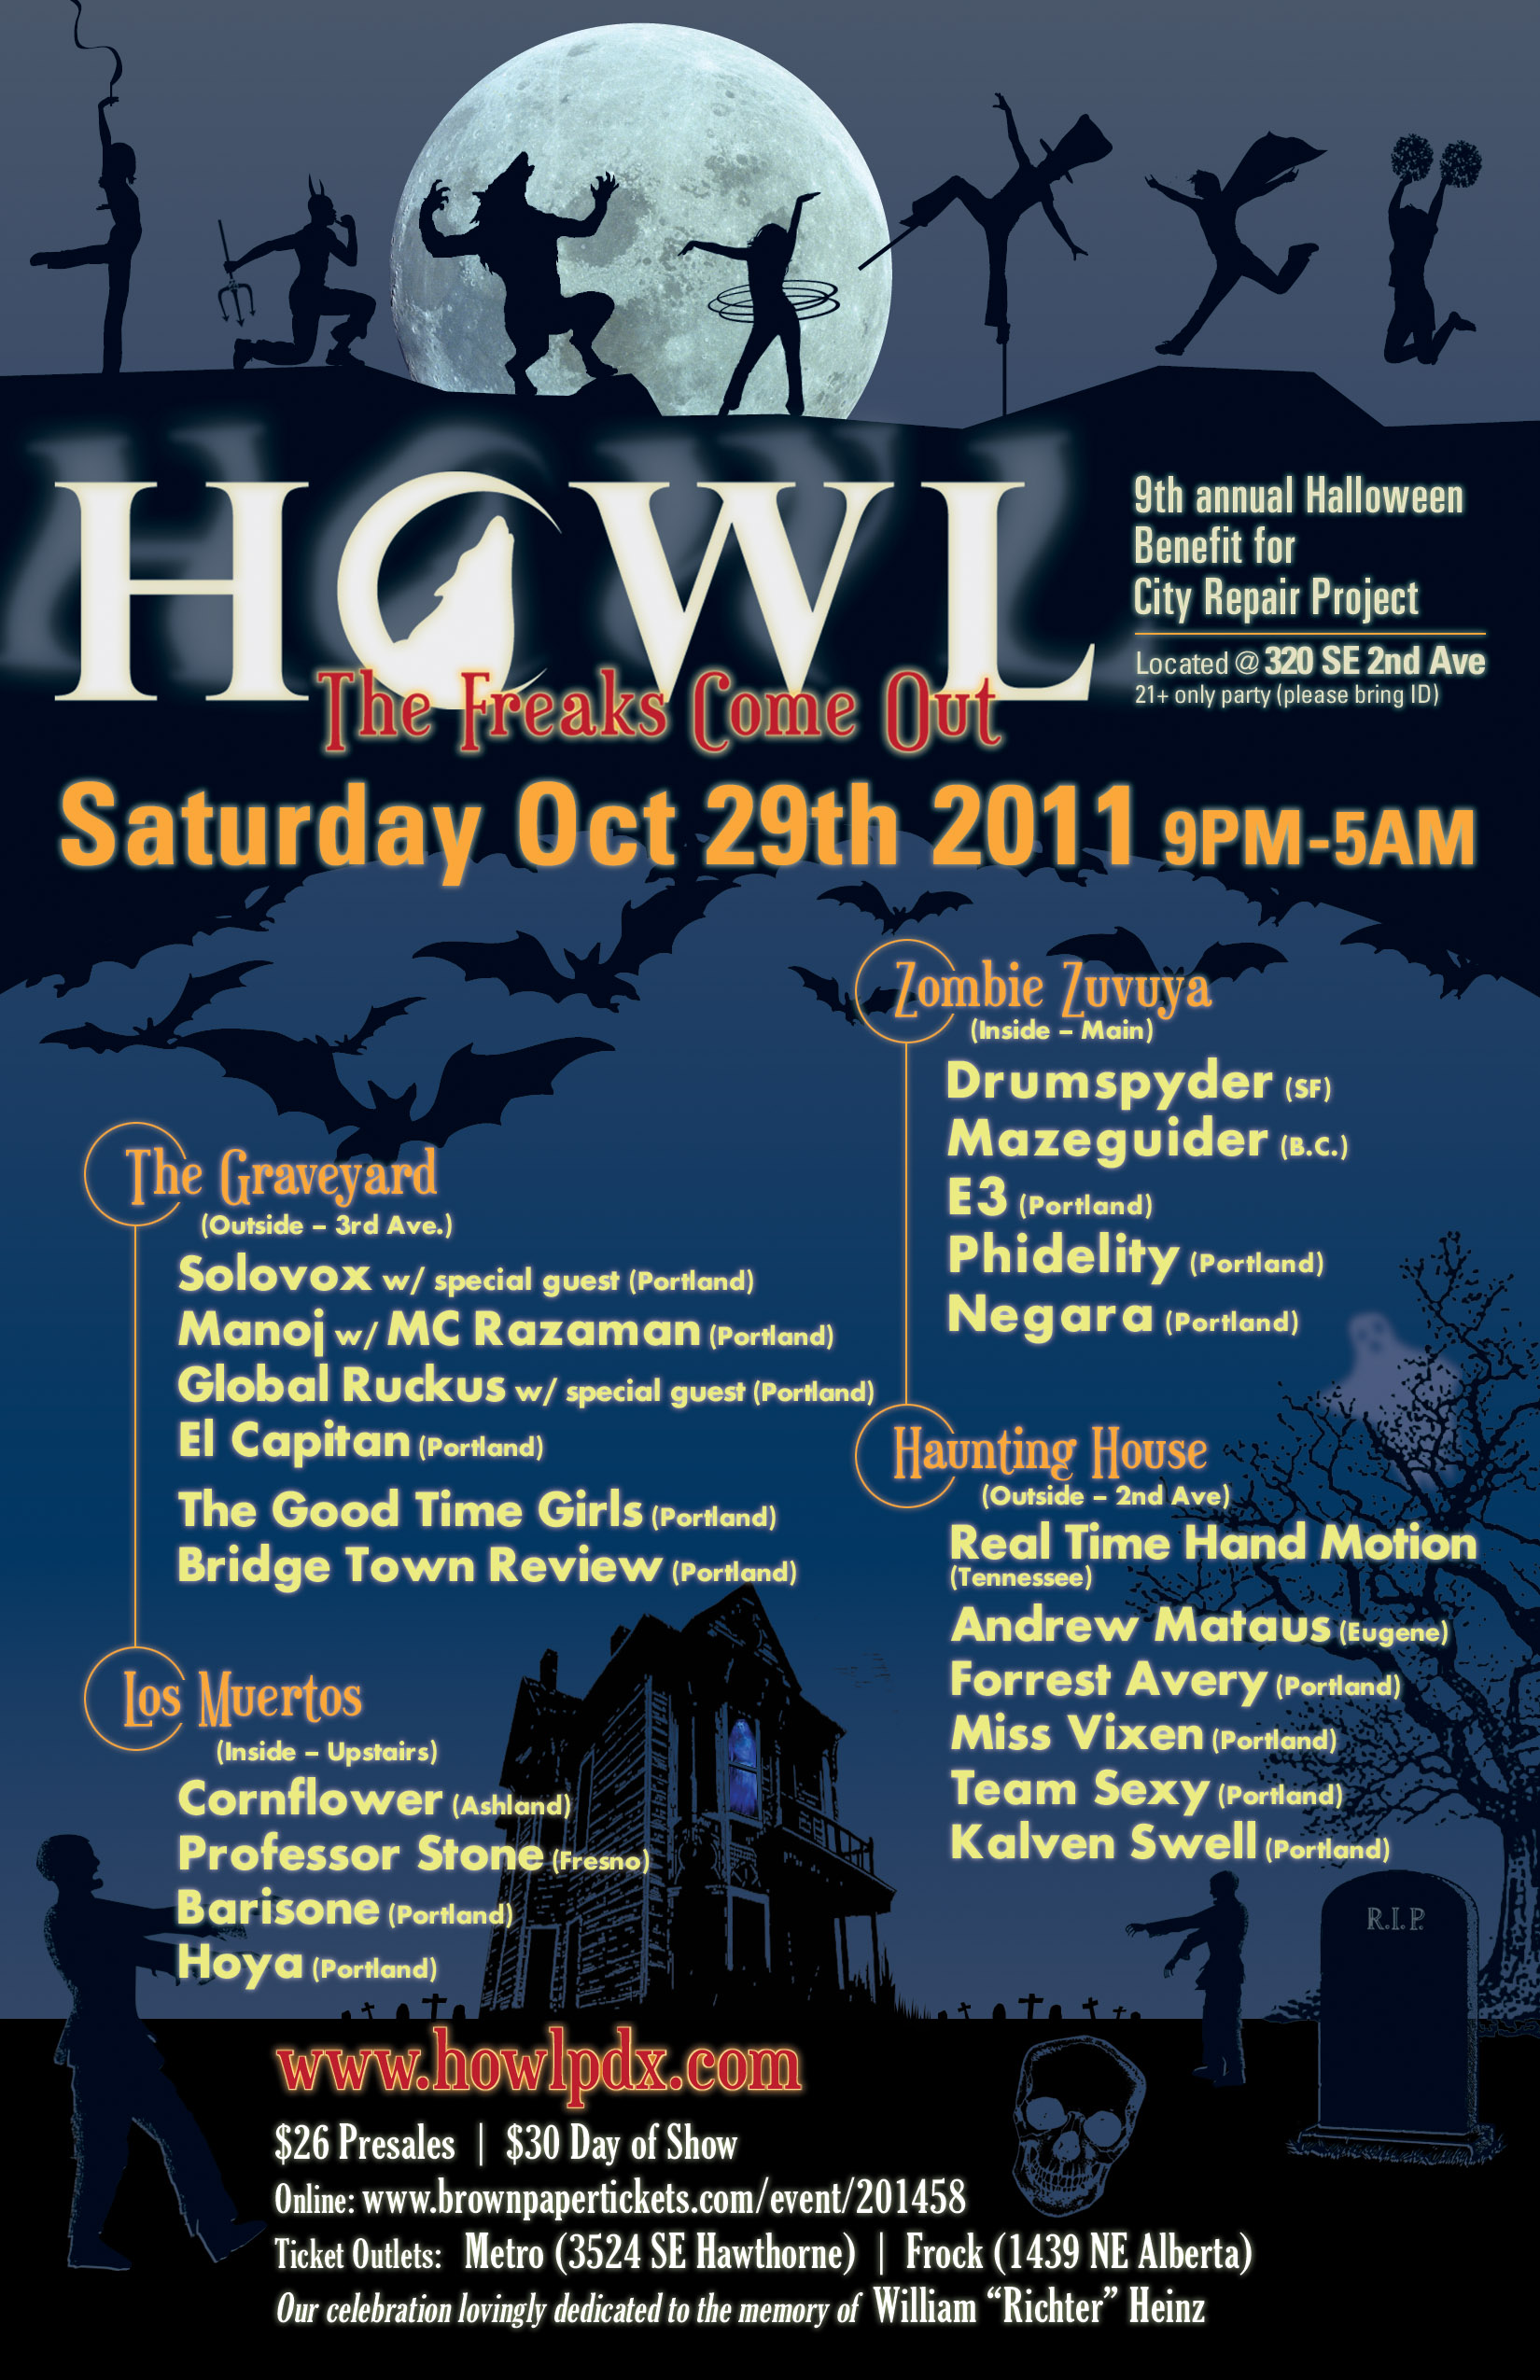 HOWL 9th annual Halloween benefit for City Repair Project